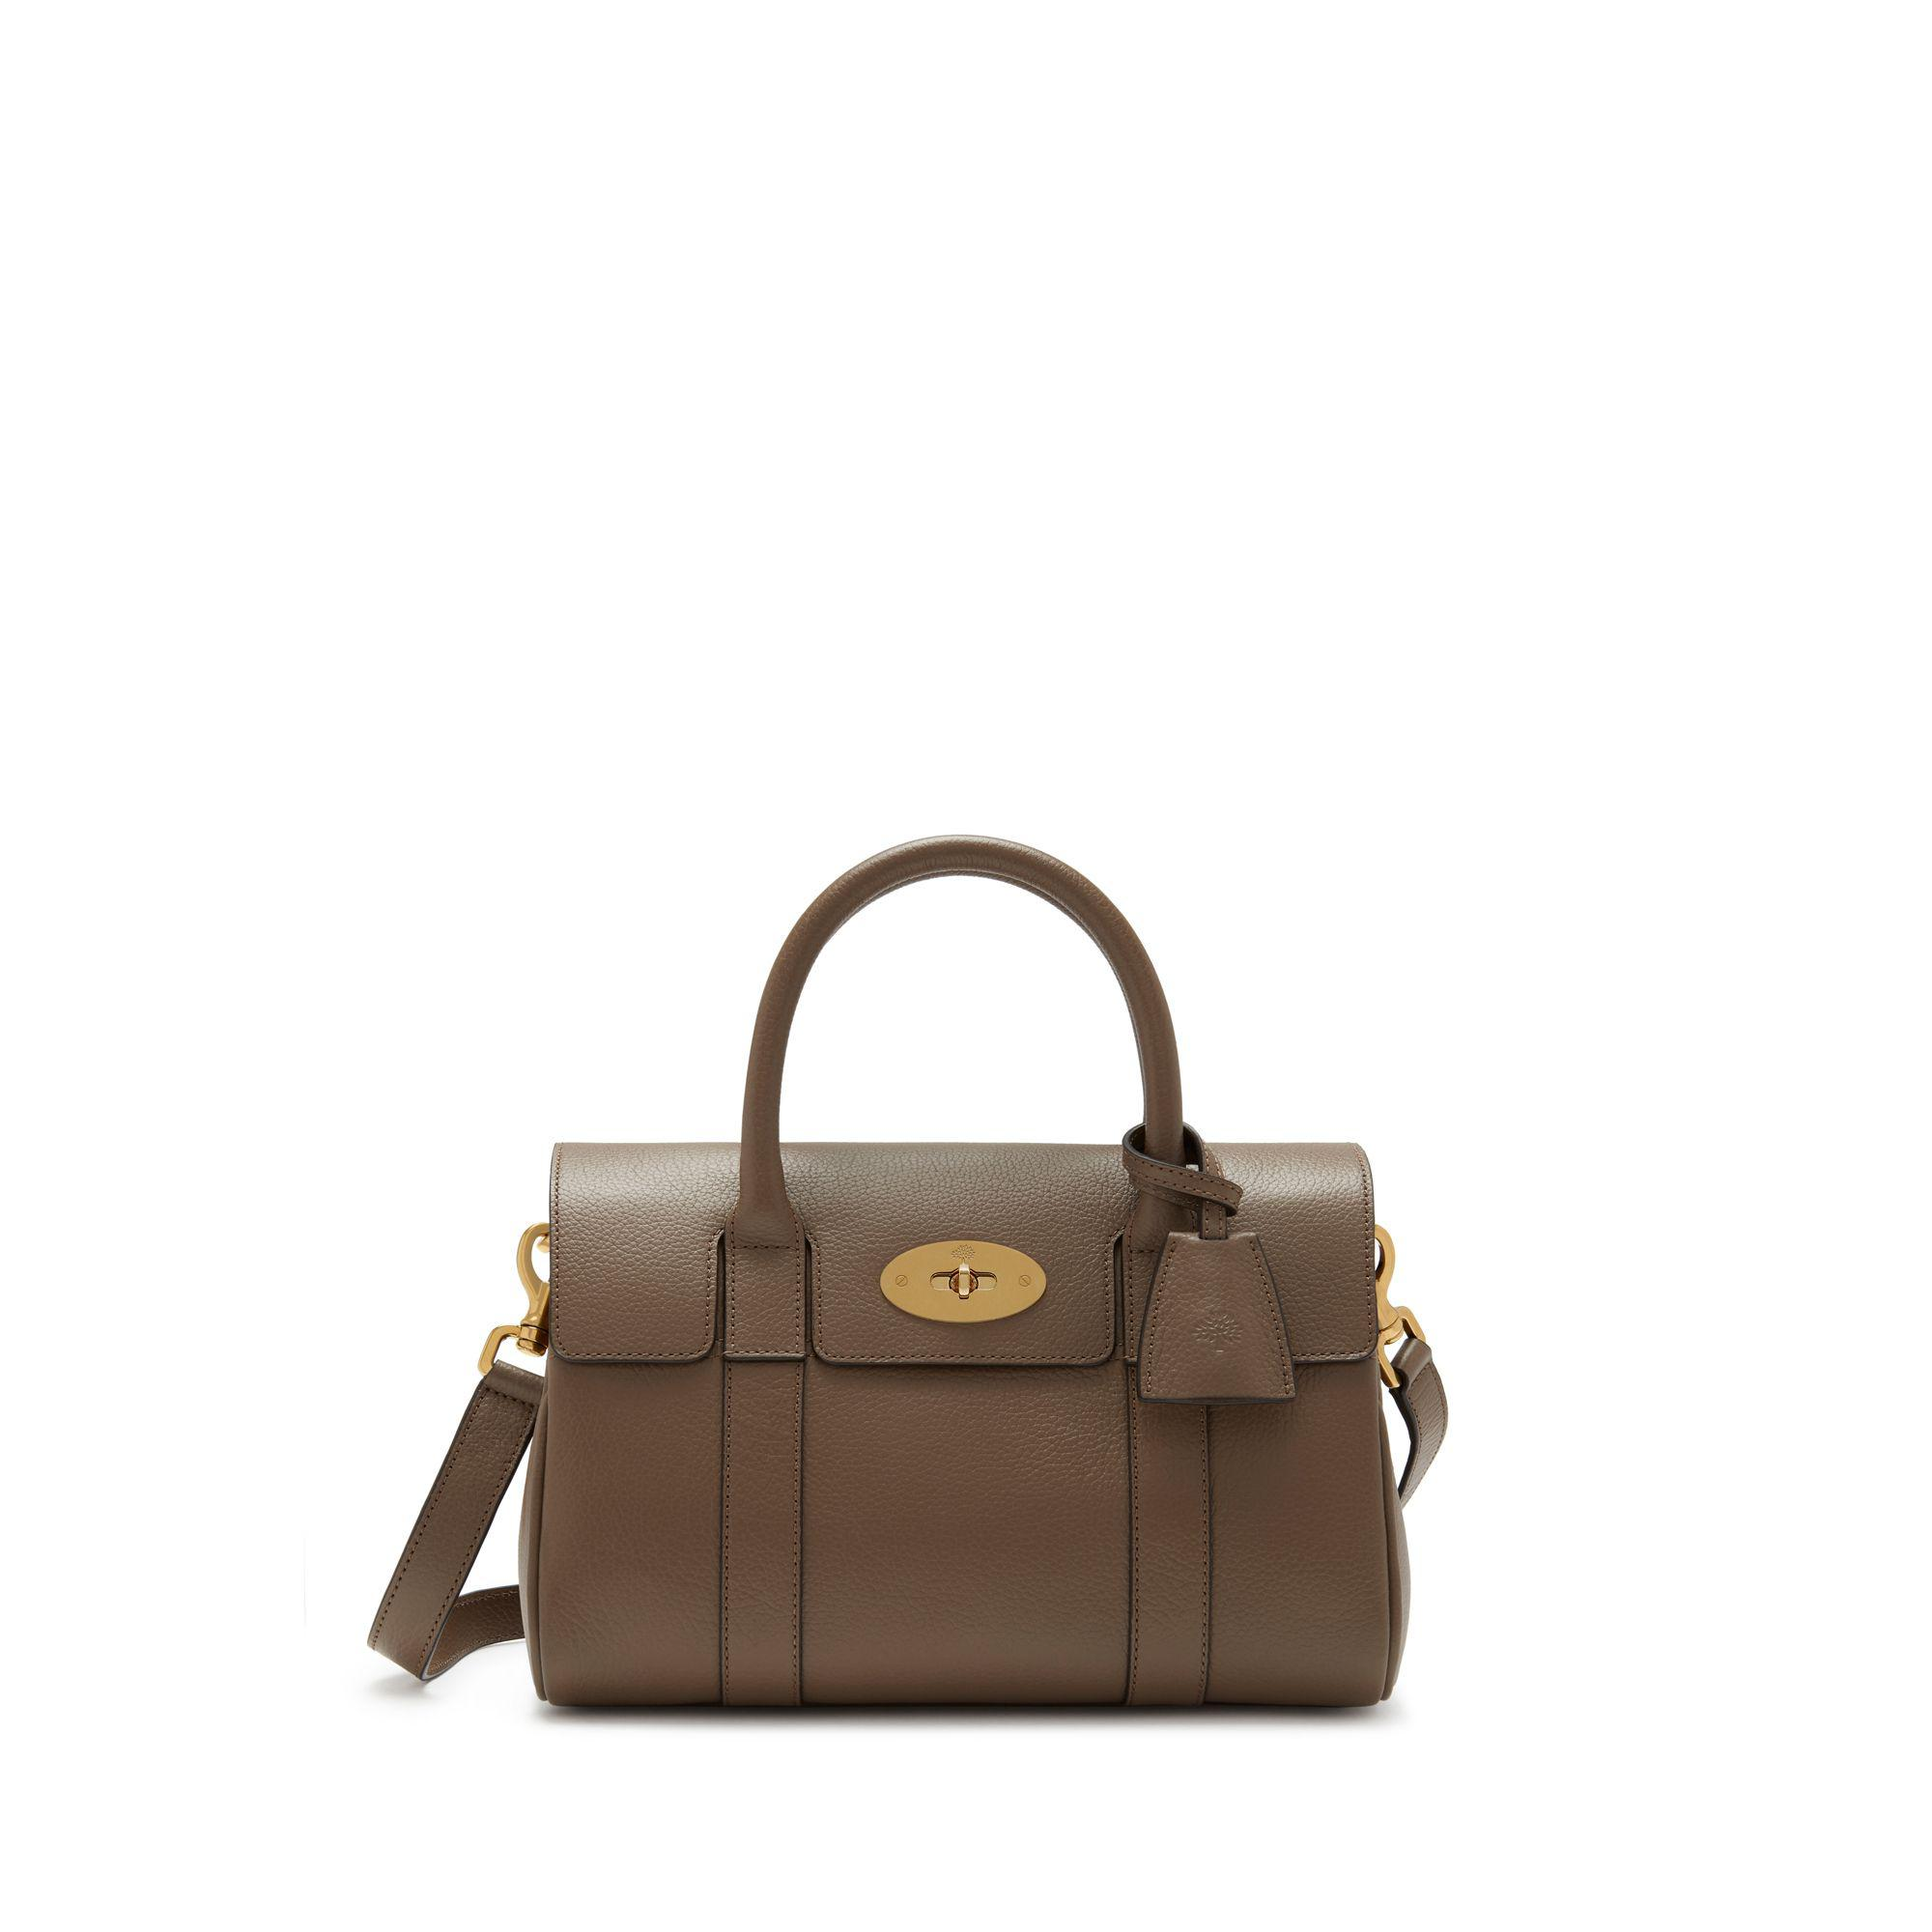 Mulberry Small Bayswater Satchel In Clay Classic Grain in Brown - Lyst f718d88658